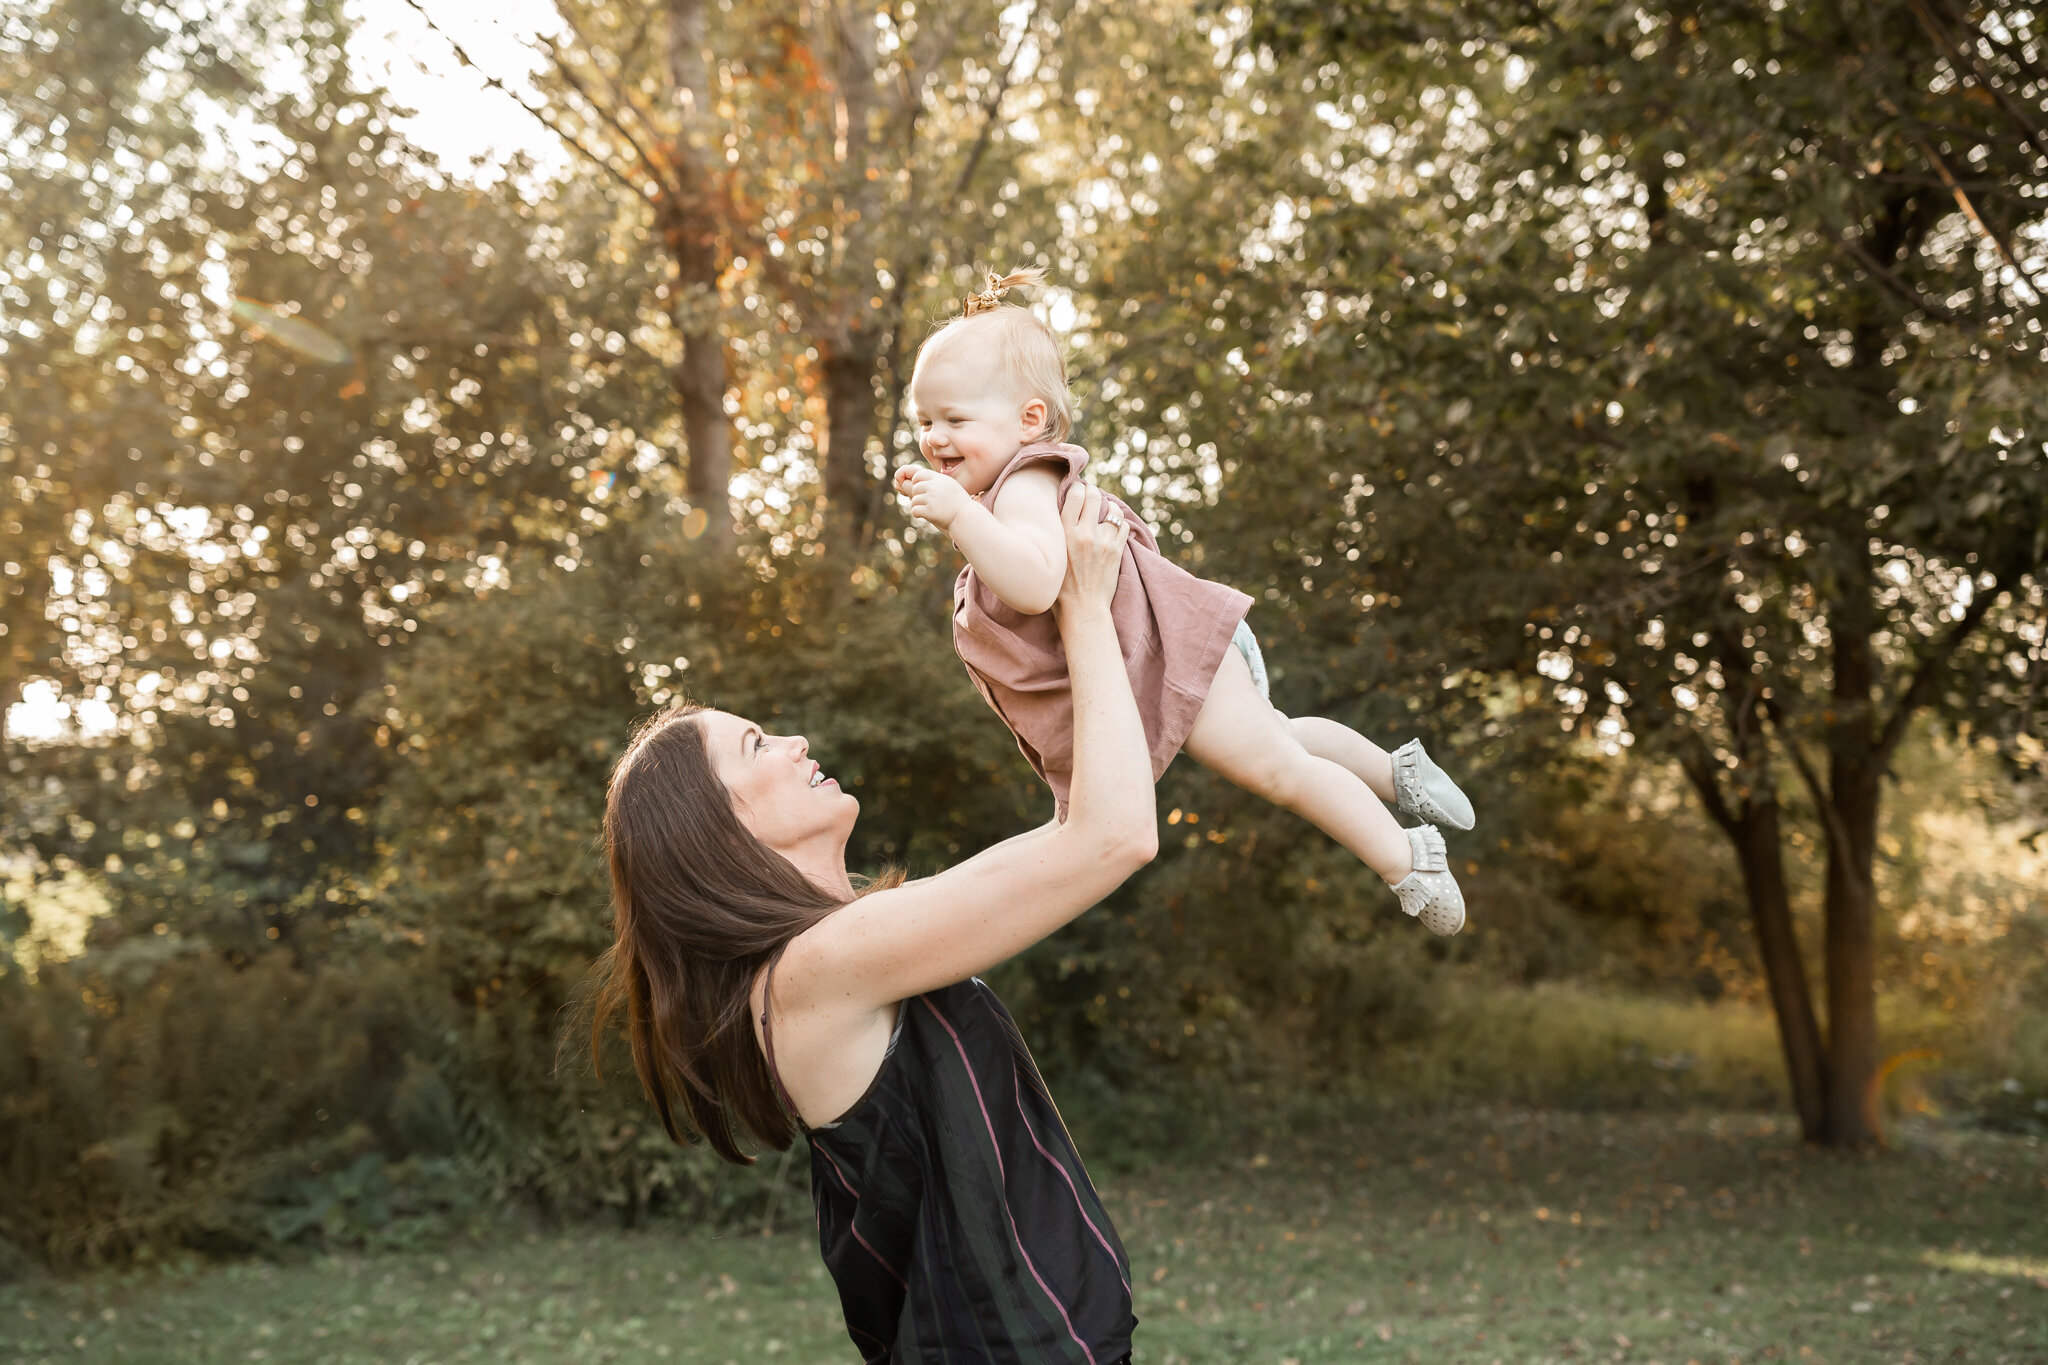 woman in black shirt holding up her baby girl laughing - AMG Photography